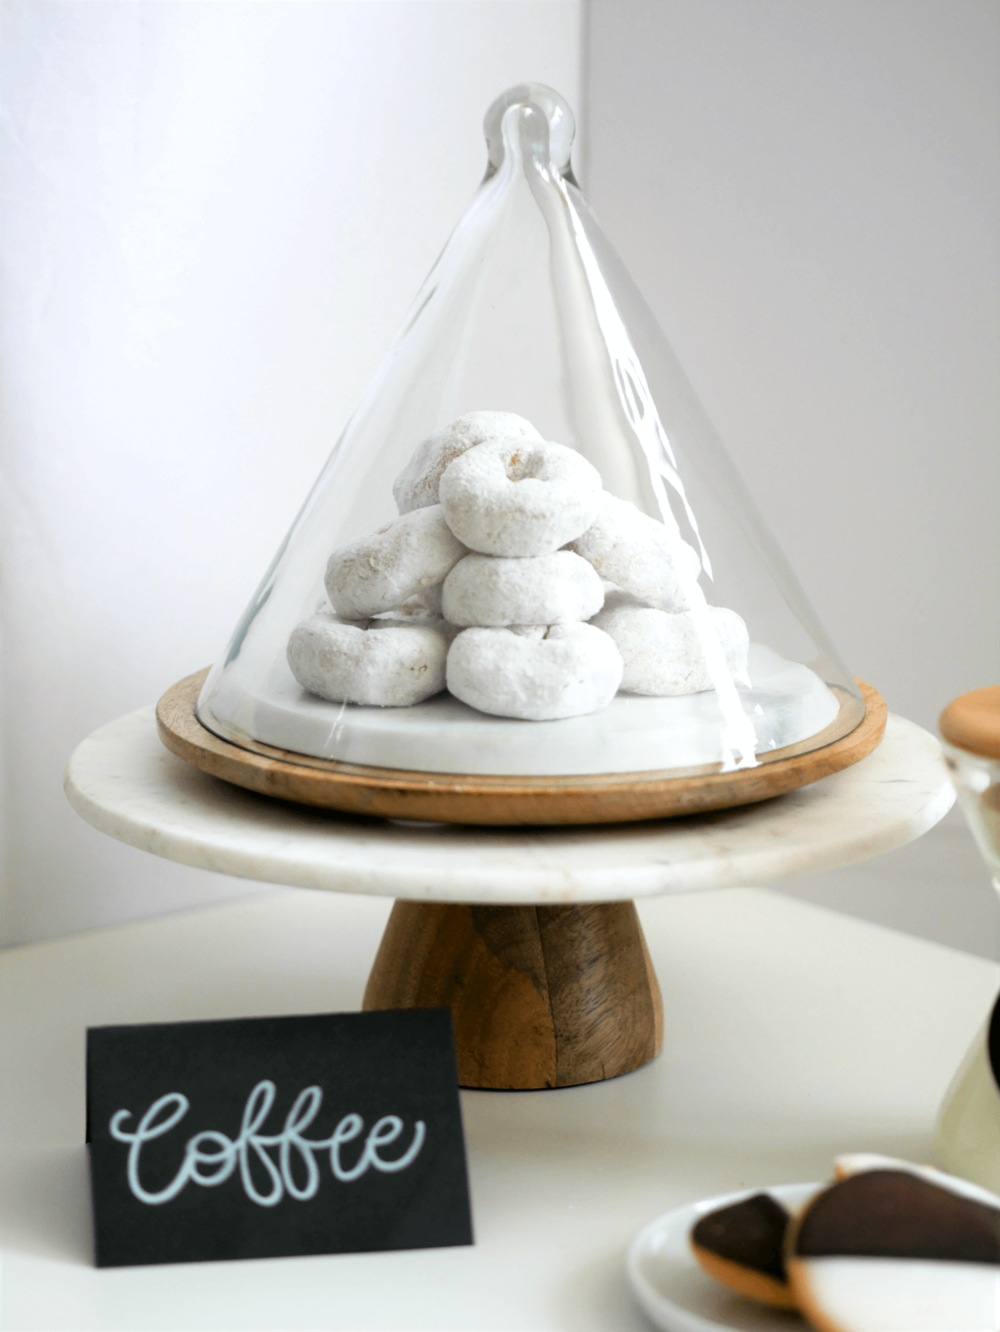 Mini Donuts for a Hot Cocoa Station Dessert. Click for the DIY to recreate your very own Hot Cocoa and Coffee Station. Styled by party stylist Mint Event Design. #partyideas #partyinspiration #hotchocolate #hotcocoa #coffeebar #coffeestation #winterparty #winterwedding #donuts